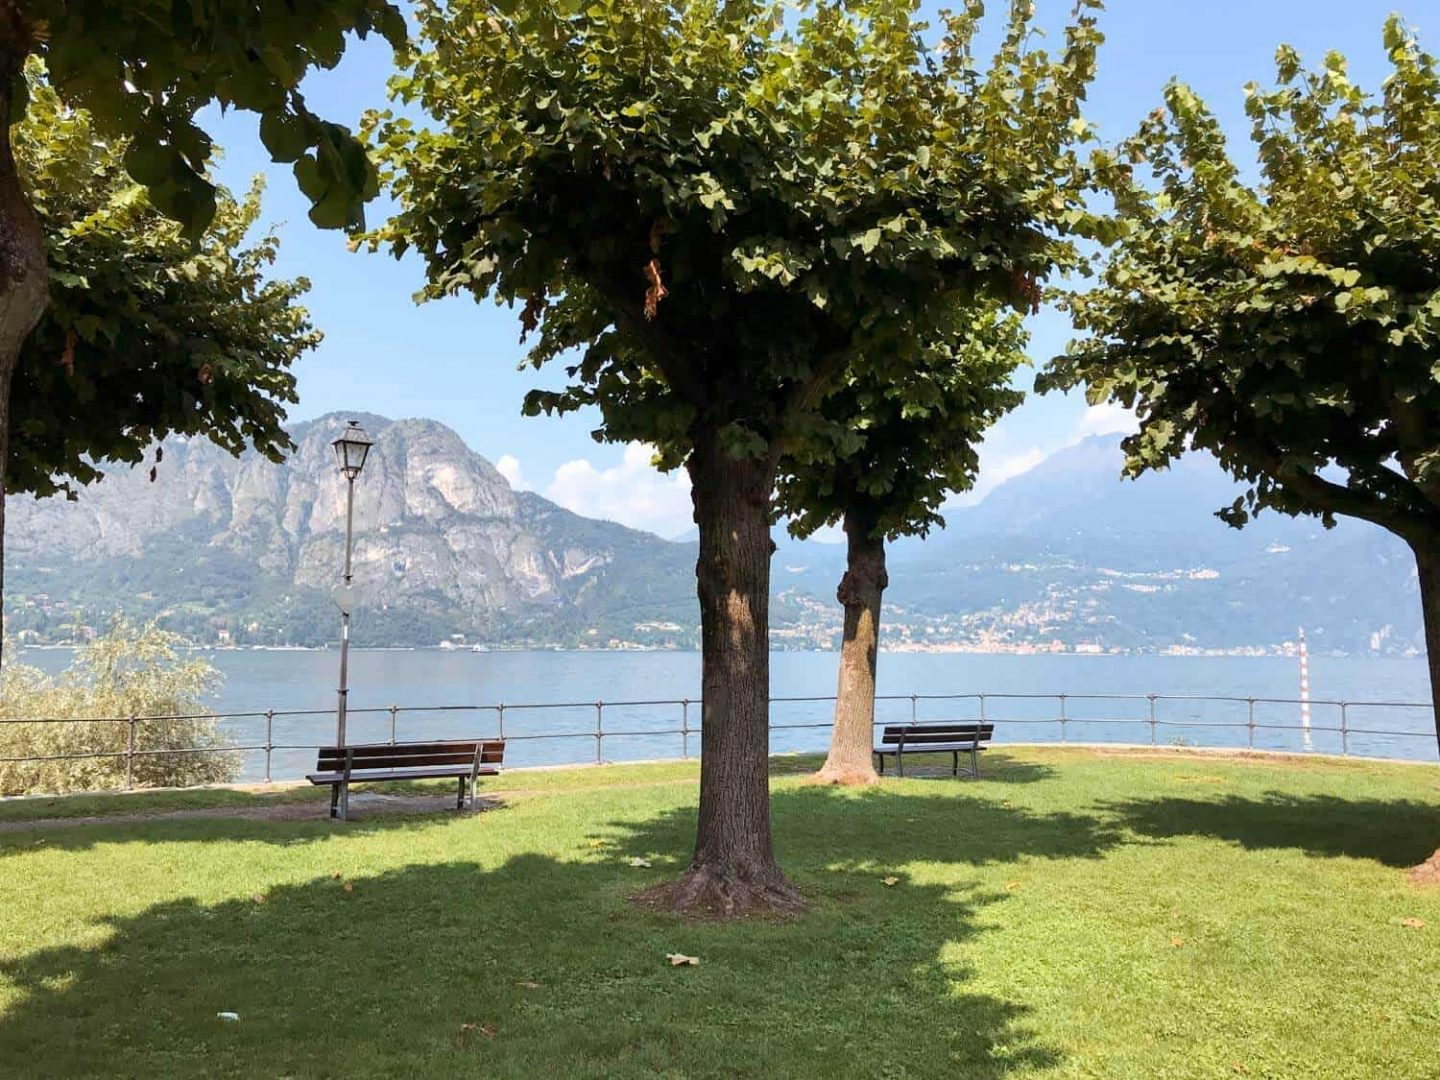 The park at Punta Spartivento provides a perfect spot to relax during a day trip Milan to Lake Como.